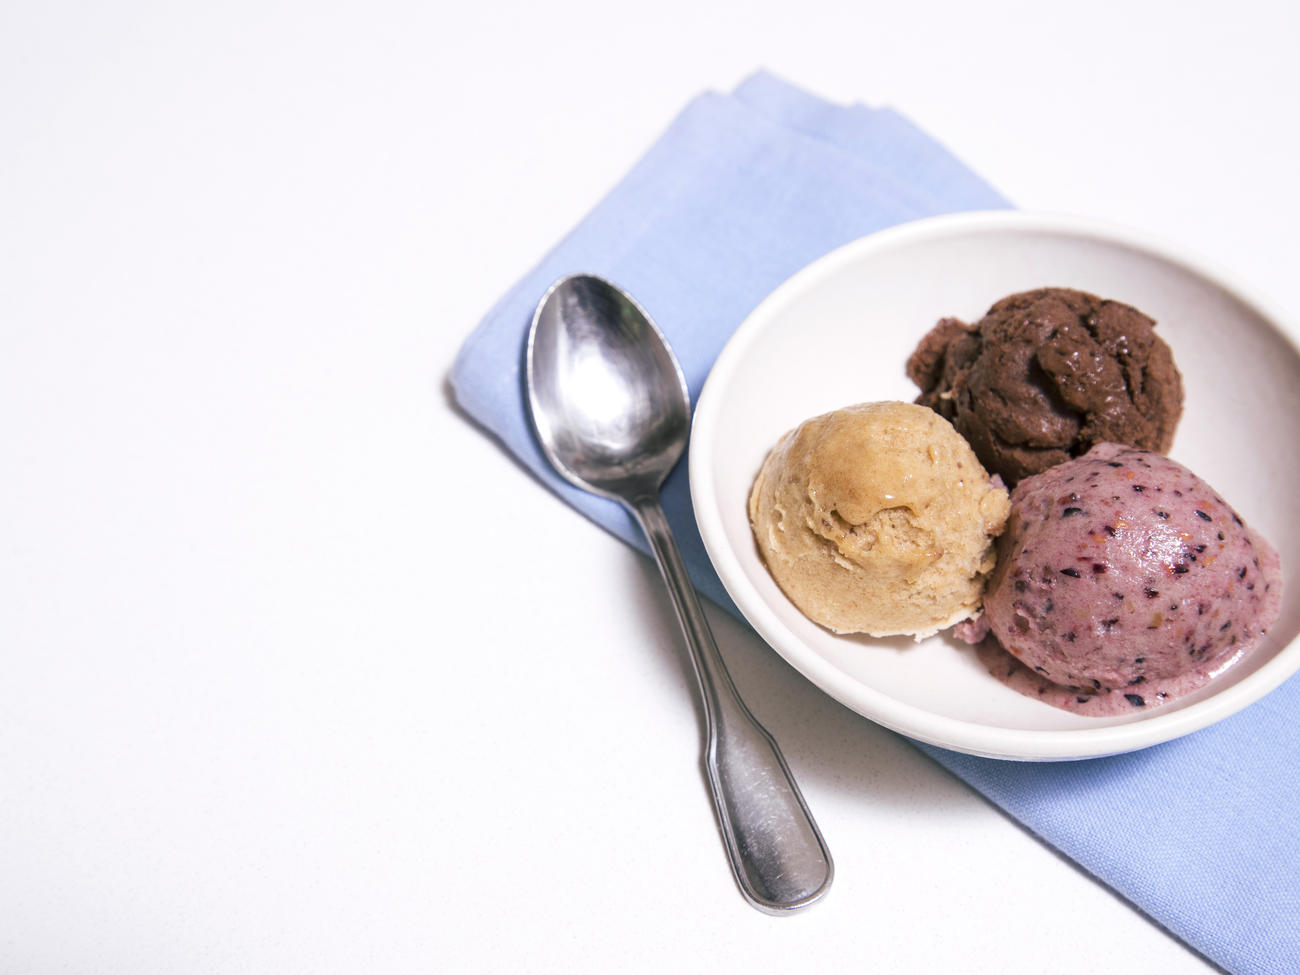 How to Make Banana Ice Cream with Berries, Chocolate, or Cinnamon